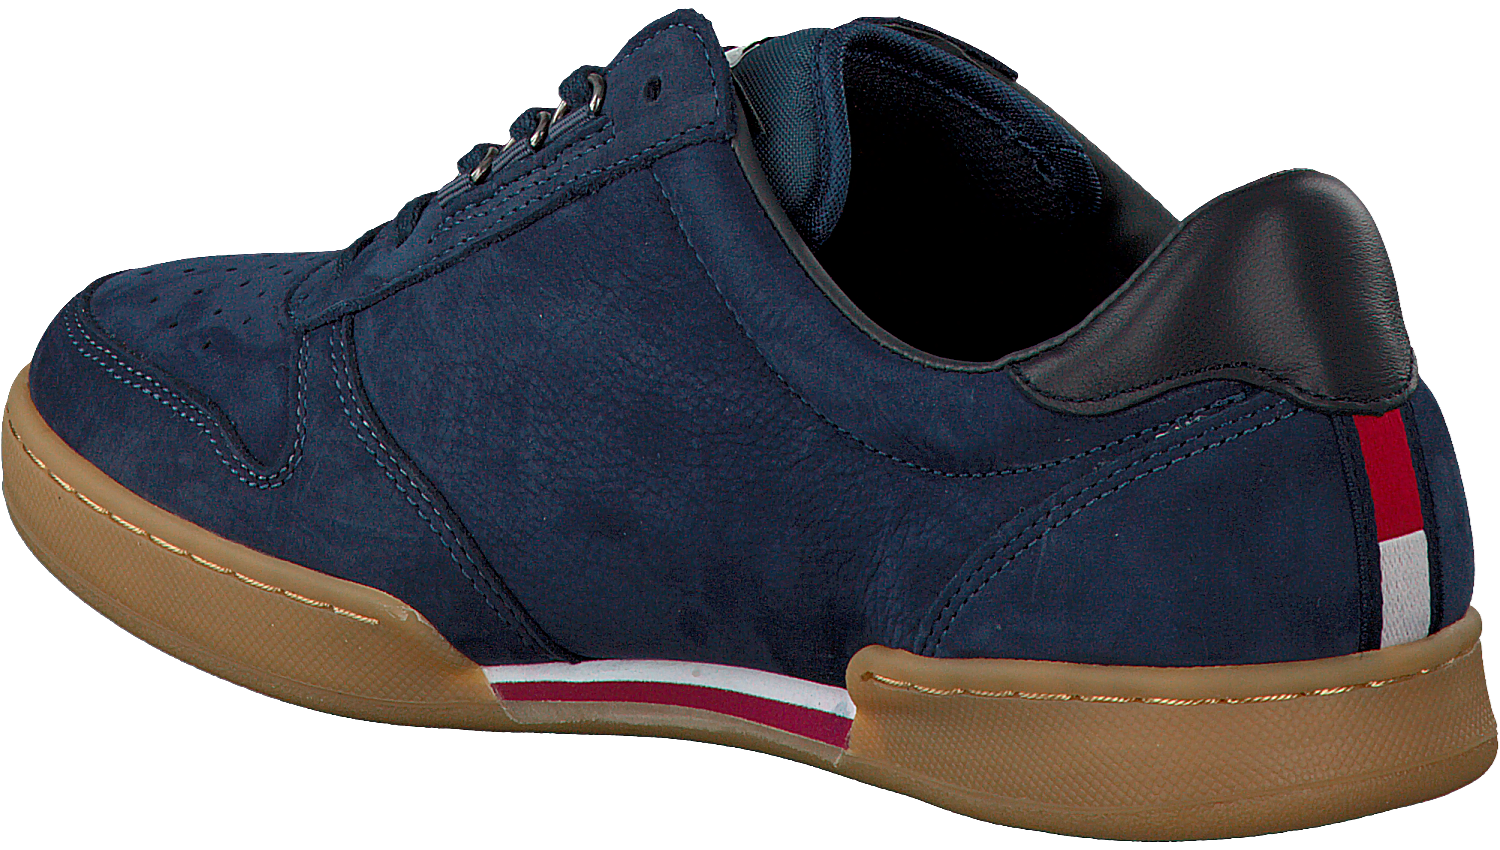 83f1e8ac6ea Blauwe TOMMY HILFIGER Sneakers HOXTON 1N - large. Next